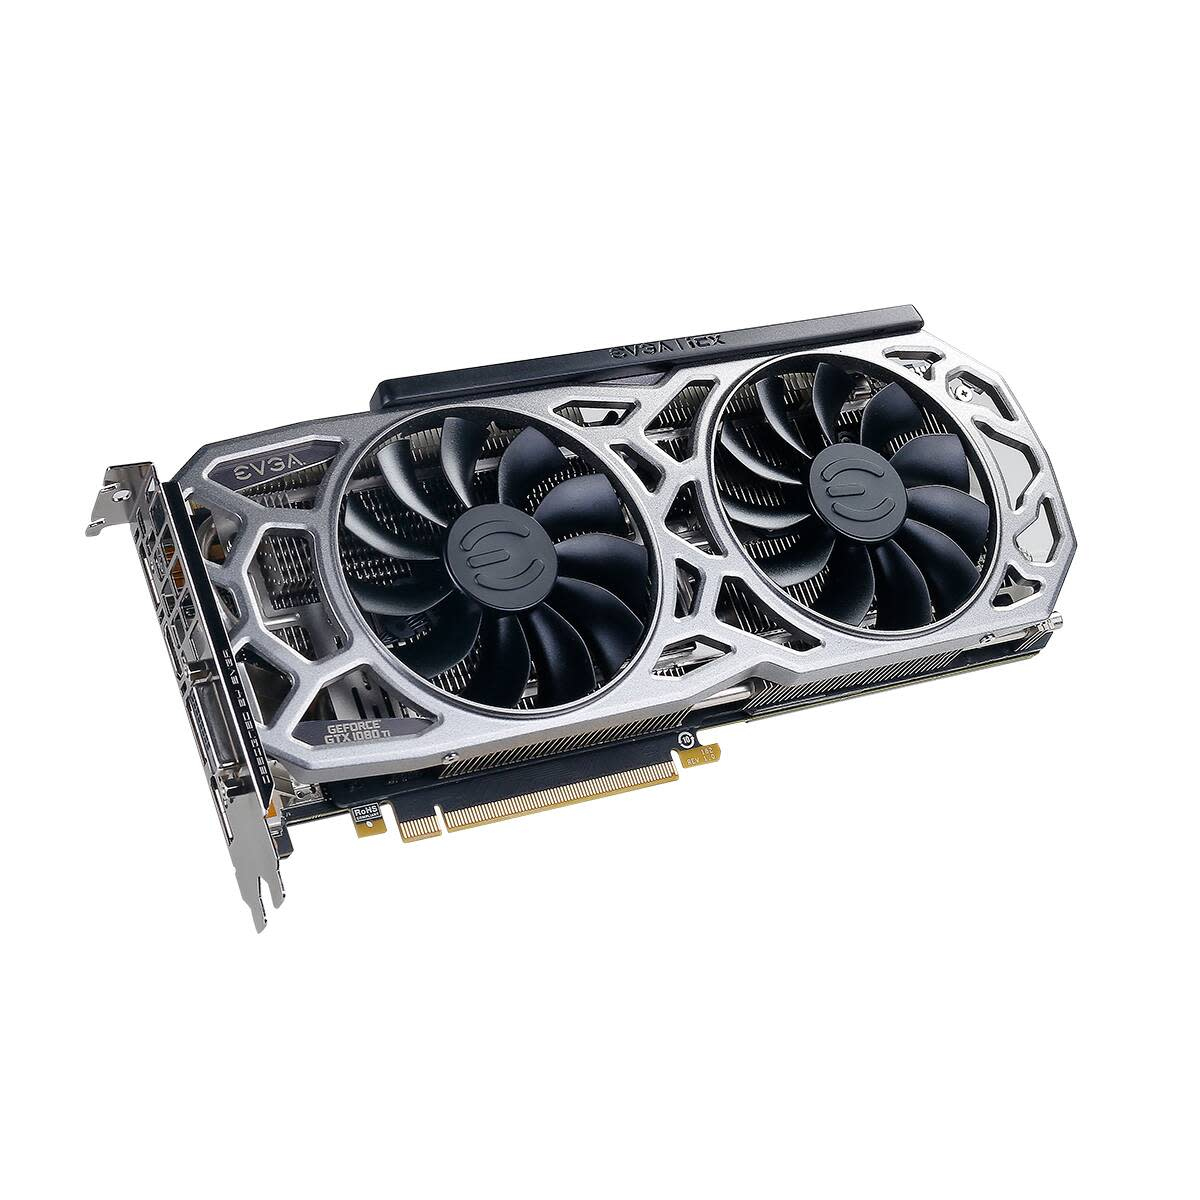 evga-gtx-1080-ti-sc-gaming-graphics-card-review-and-benchmarks